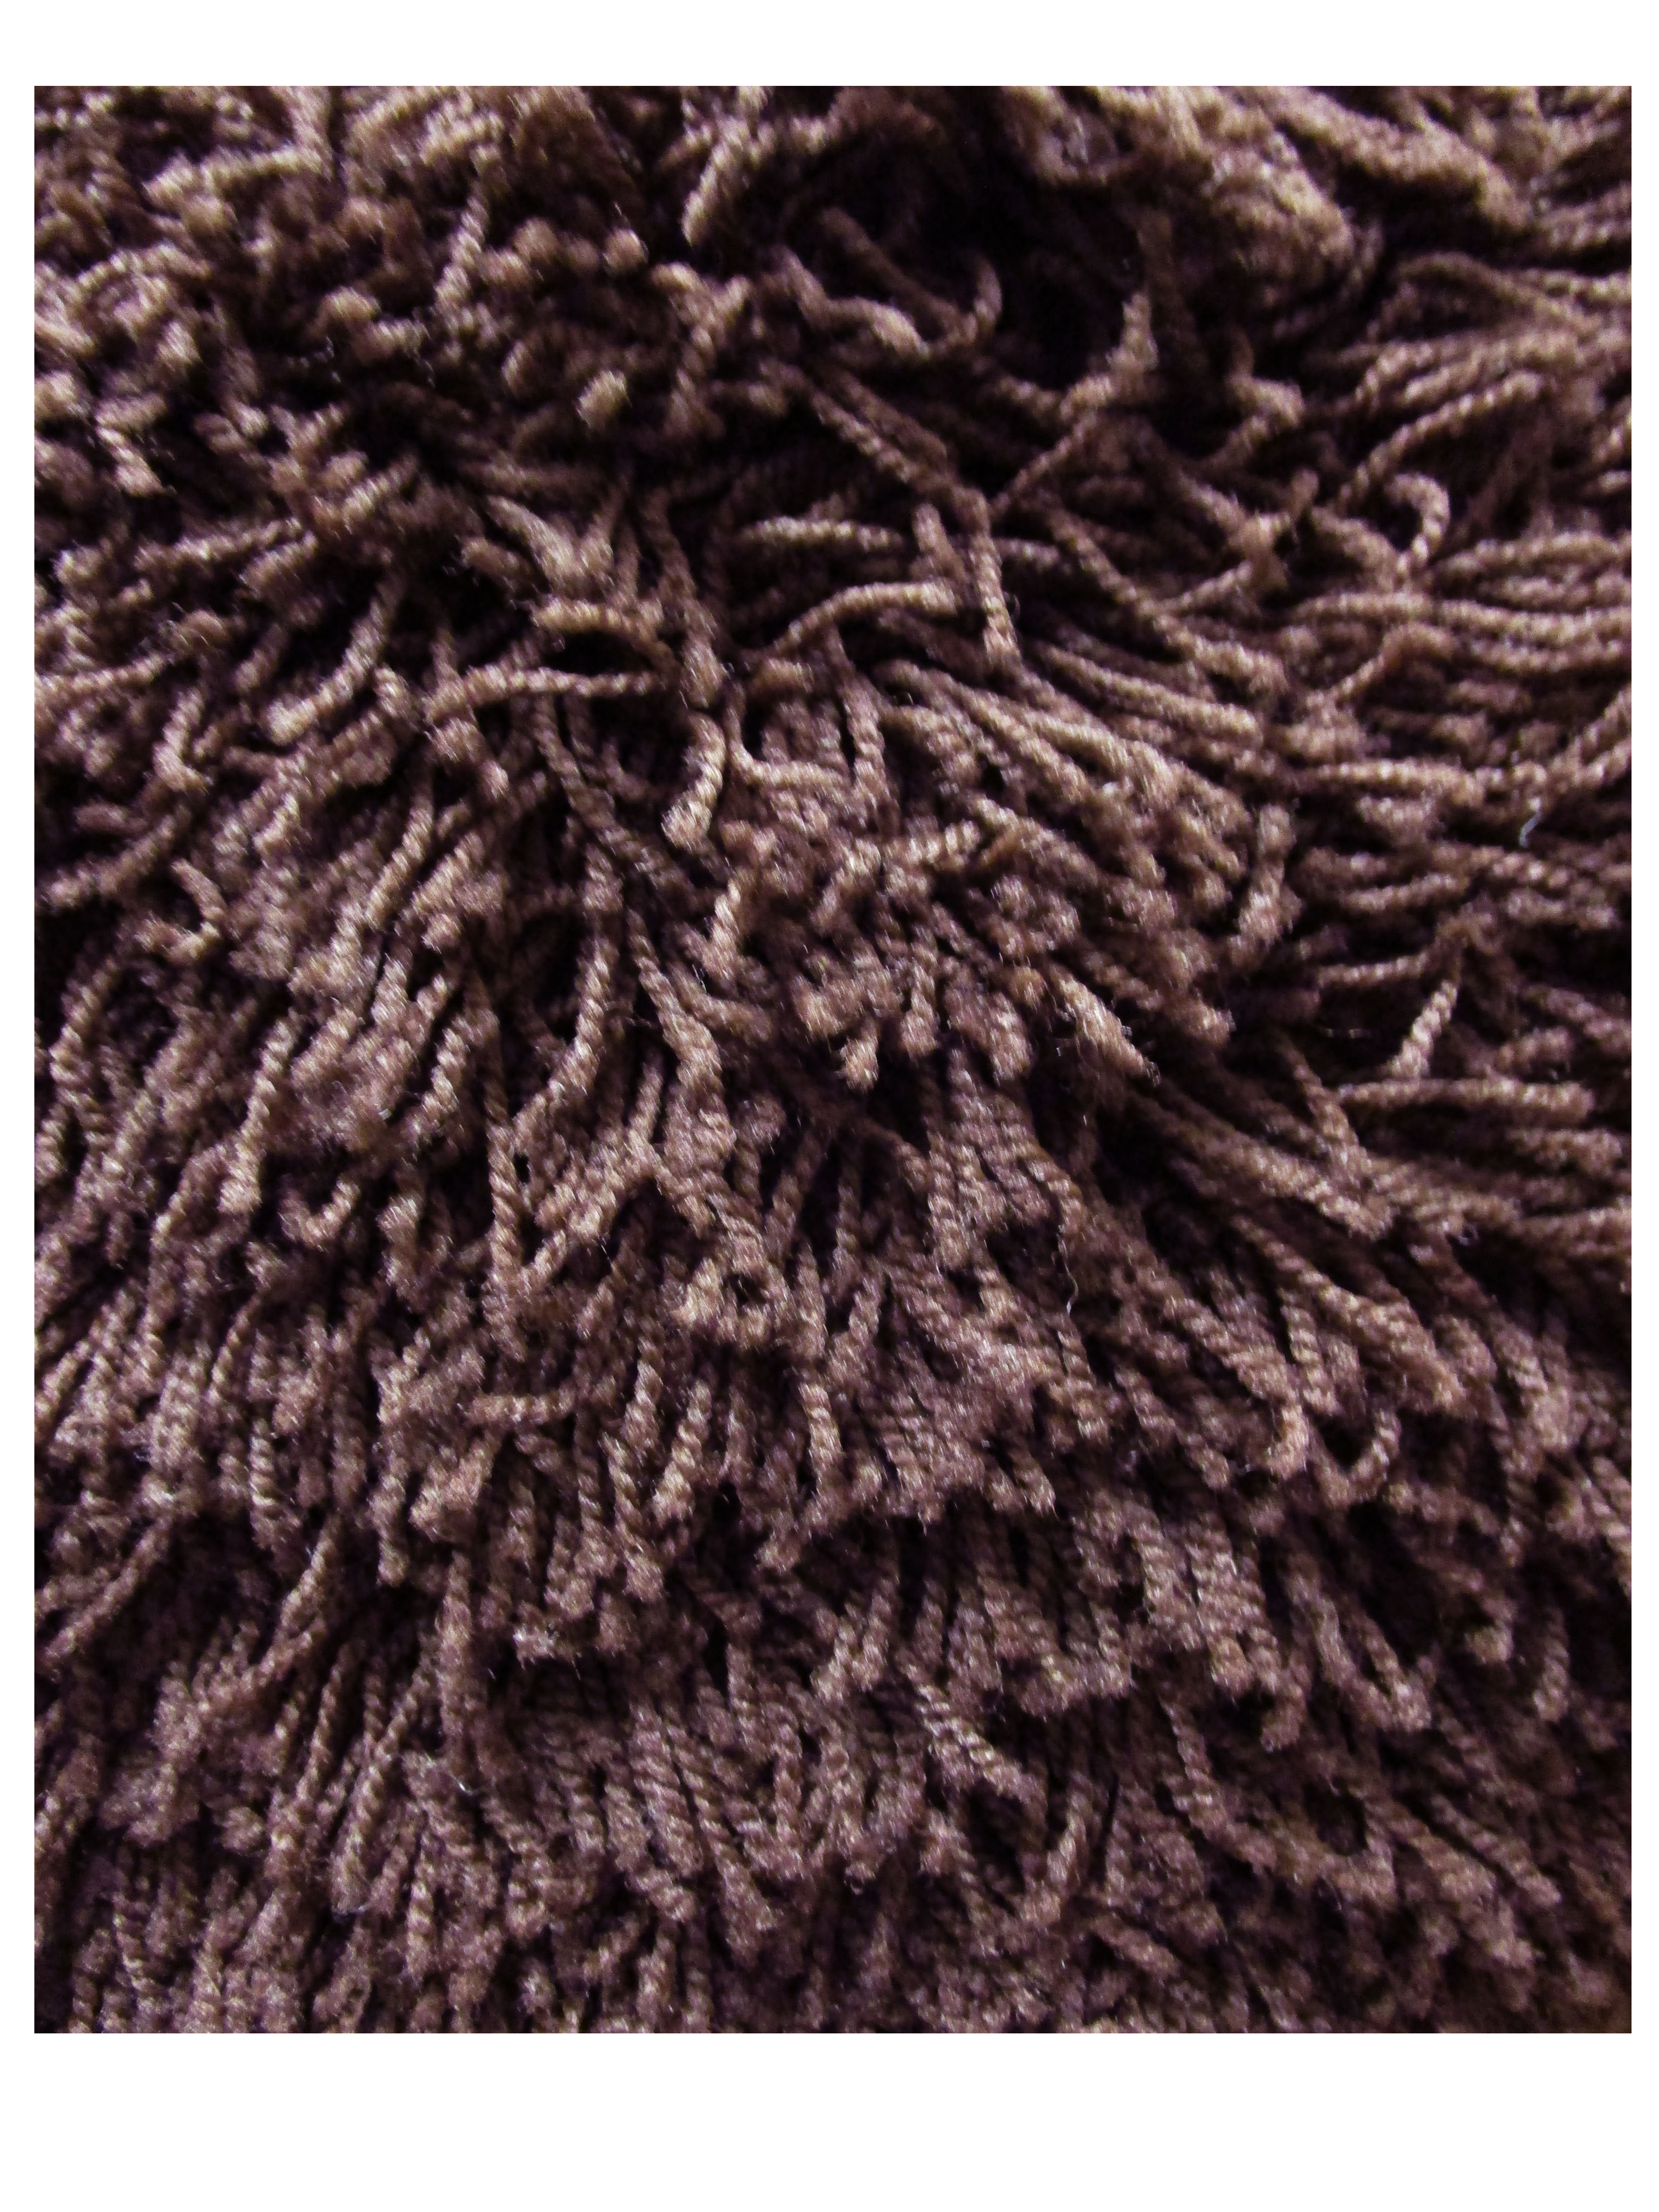 Cocoa Brown Shag Rugs